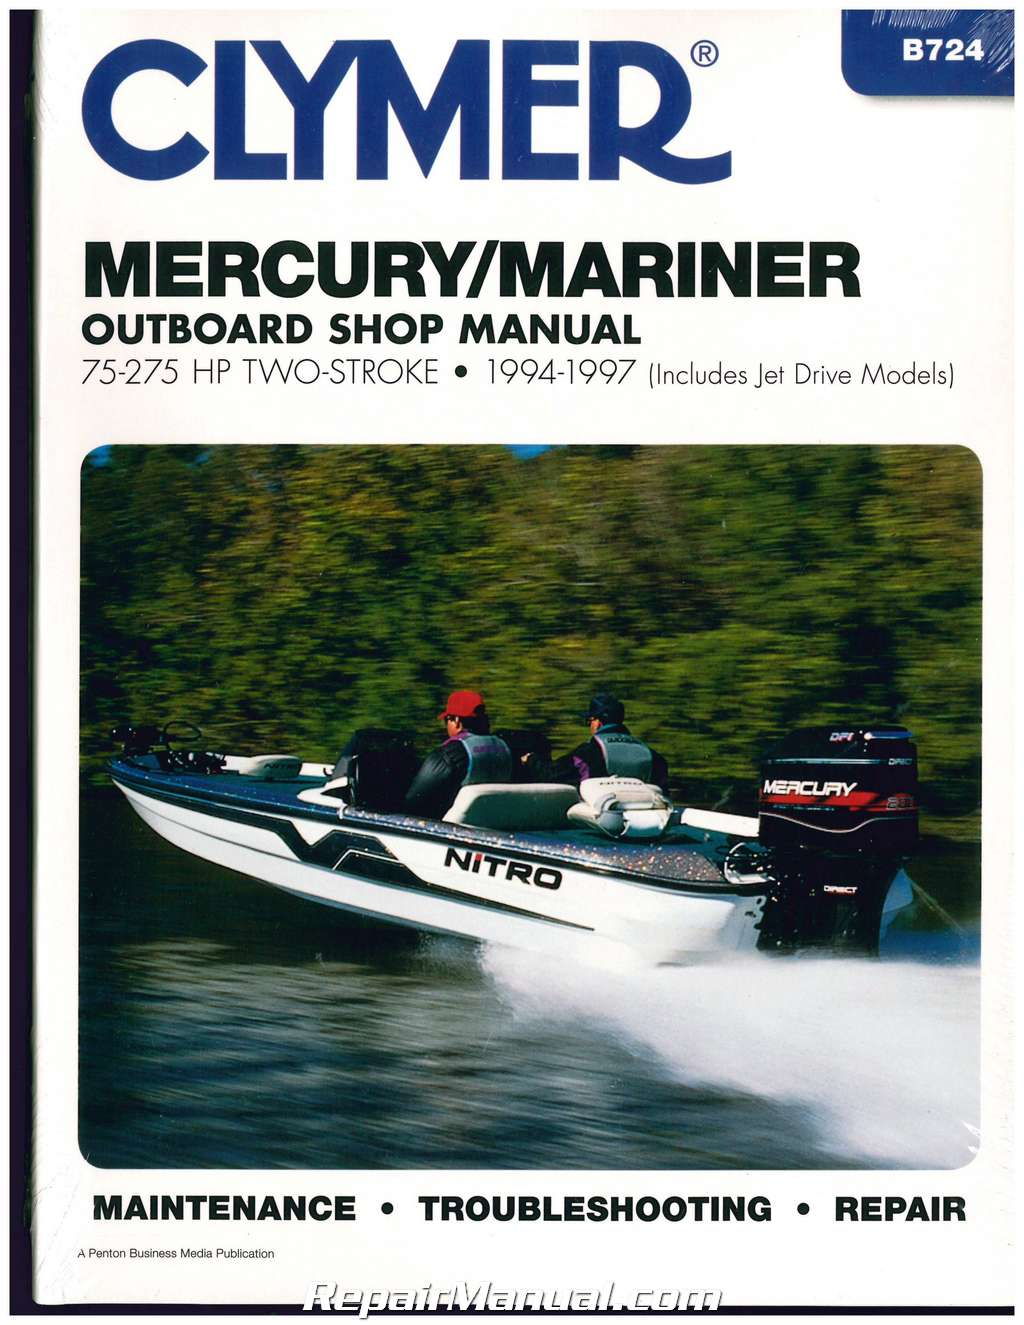 1994-1997 Mercury-Mariner 75-275 hp Outboard Boat Engine Repair Manual